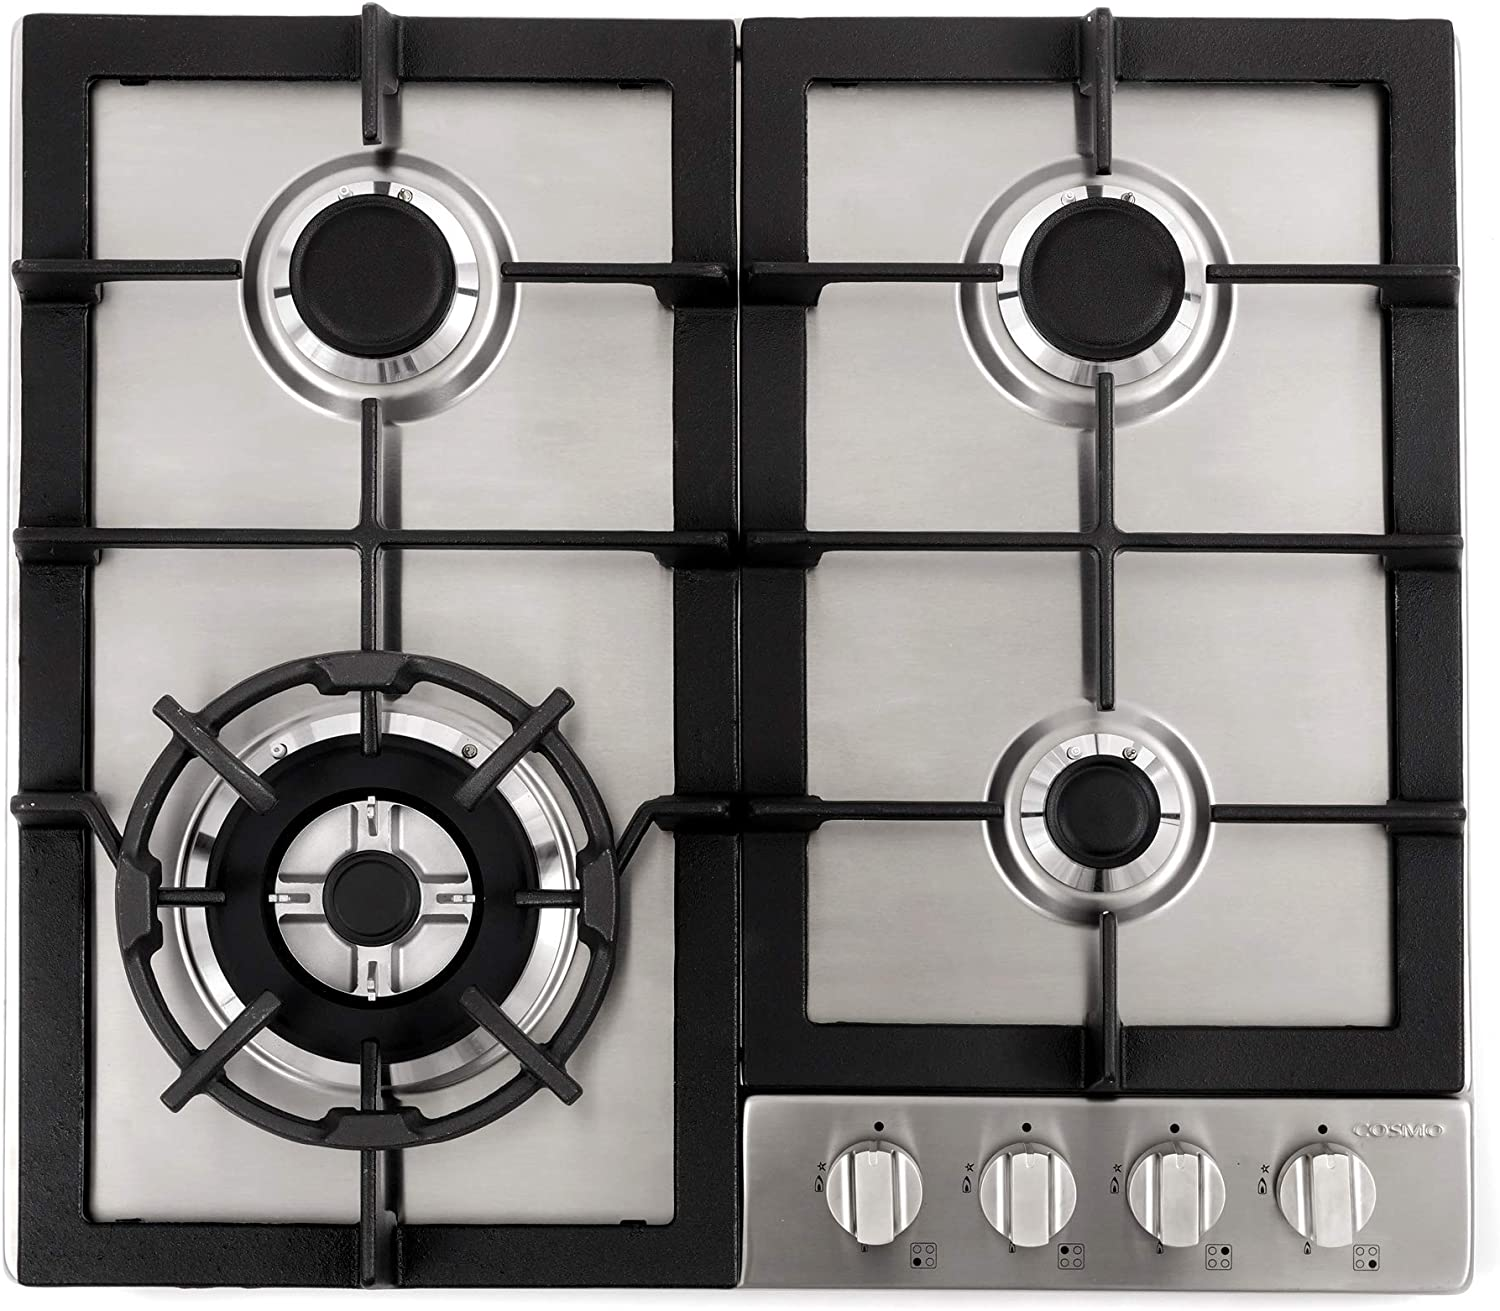 Choose Top 8 Best gas range for Home Chef in 2020 15